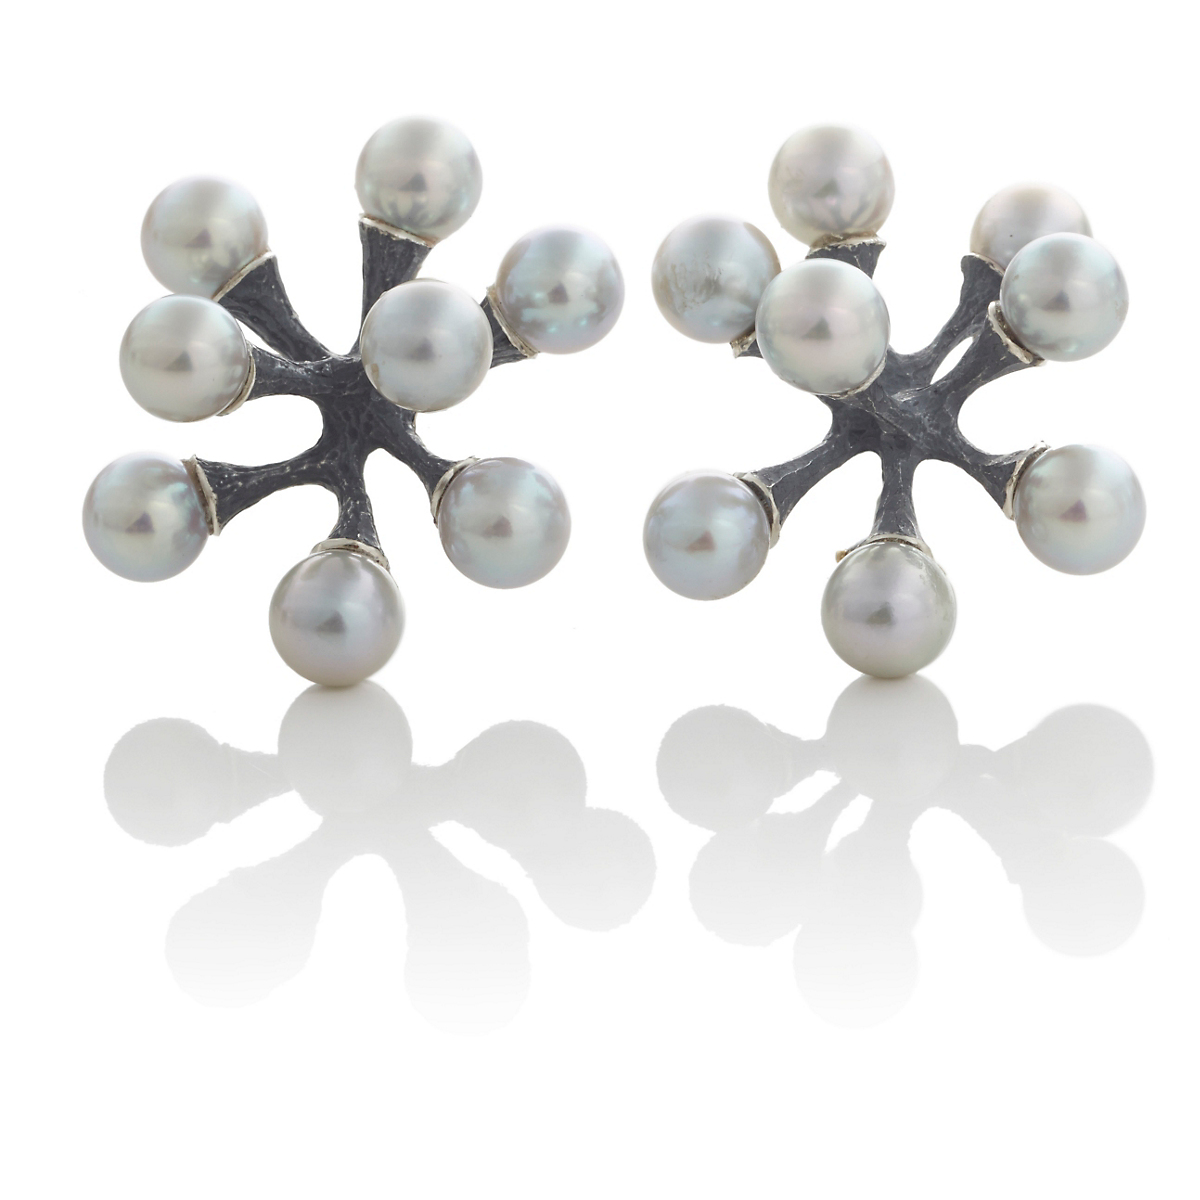 John Iversen Oxidized Silver Gray Akoya Pearl Jack Earrings